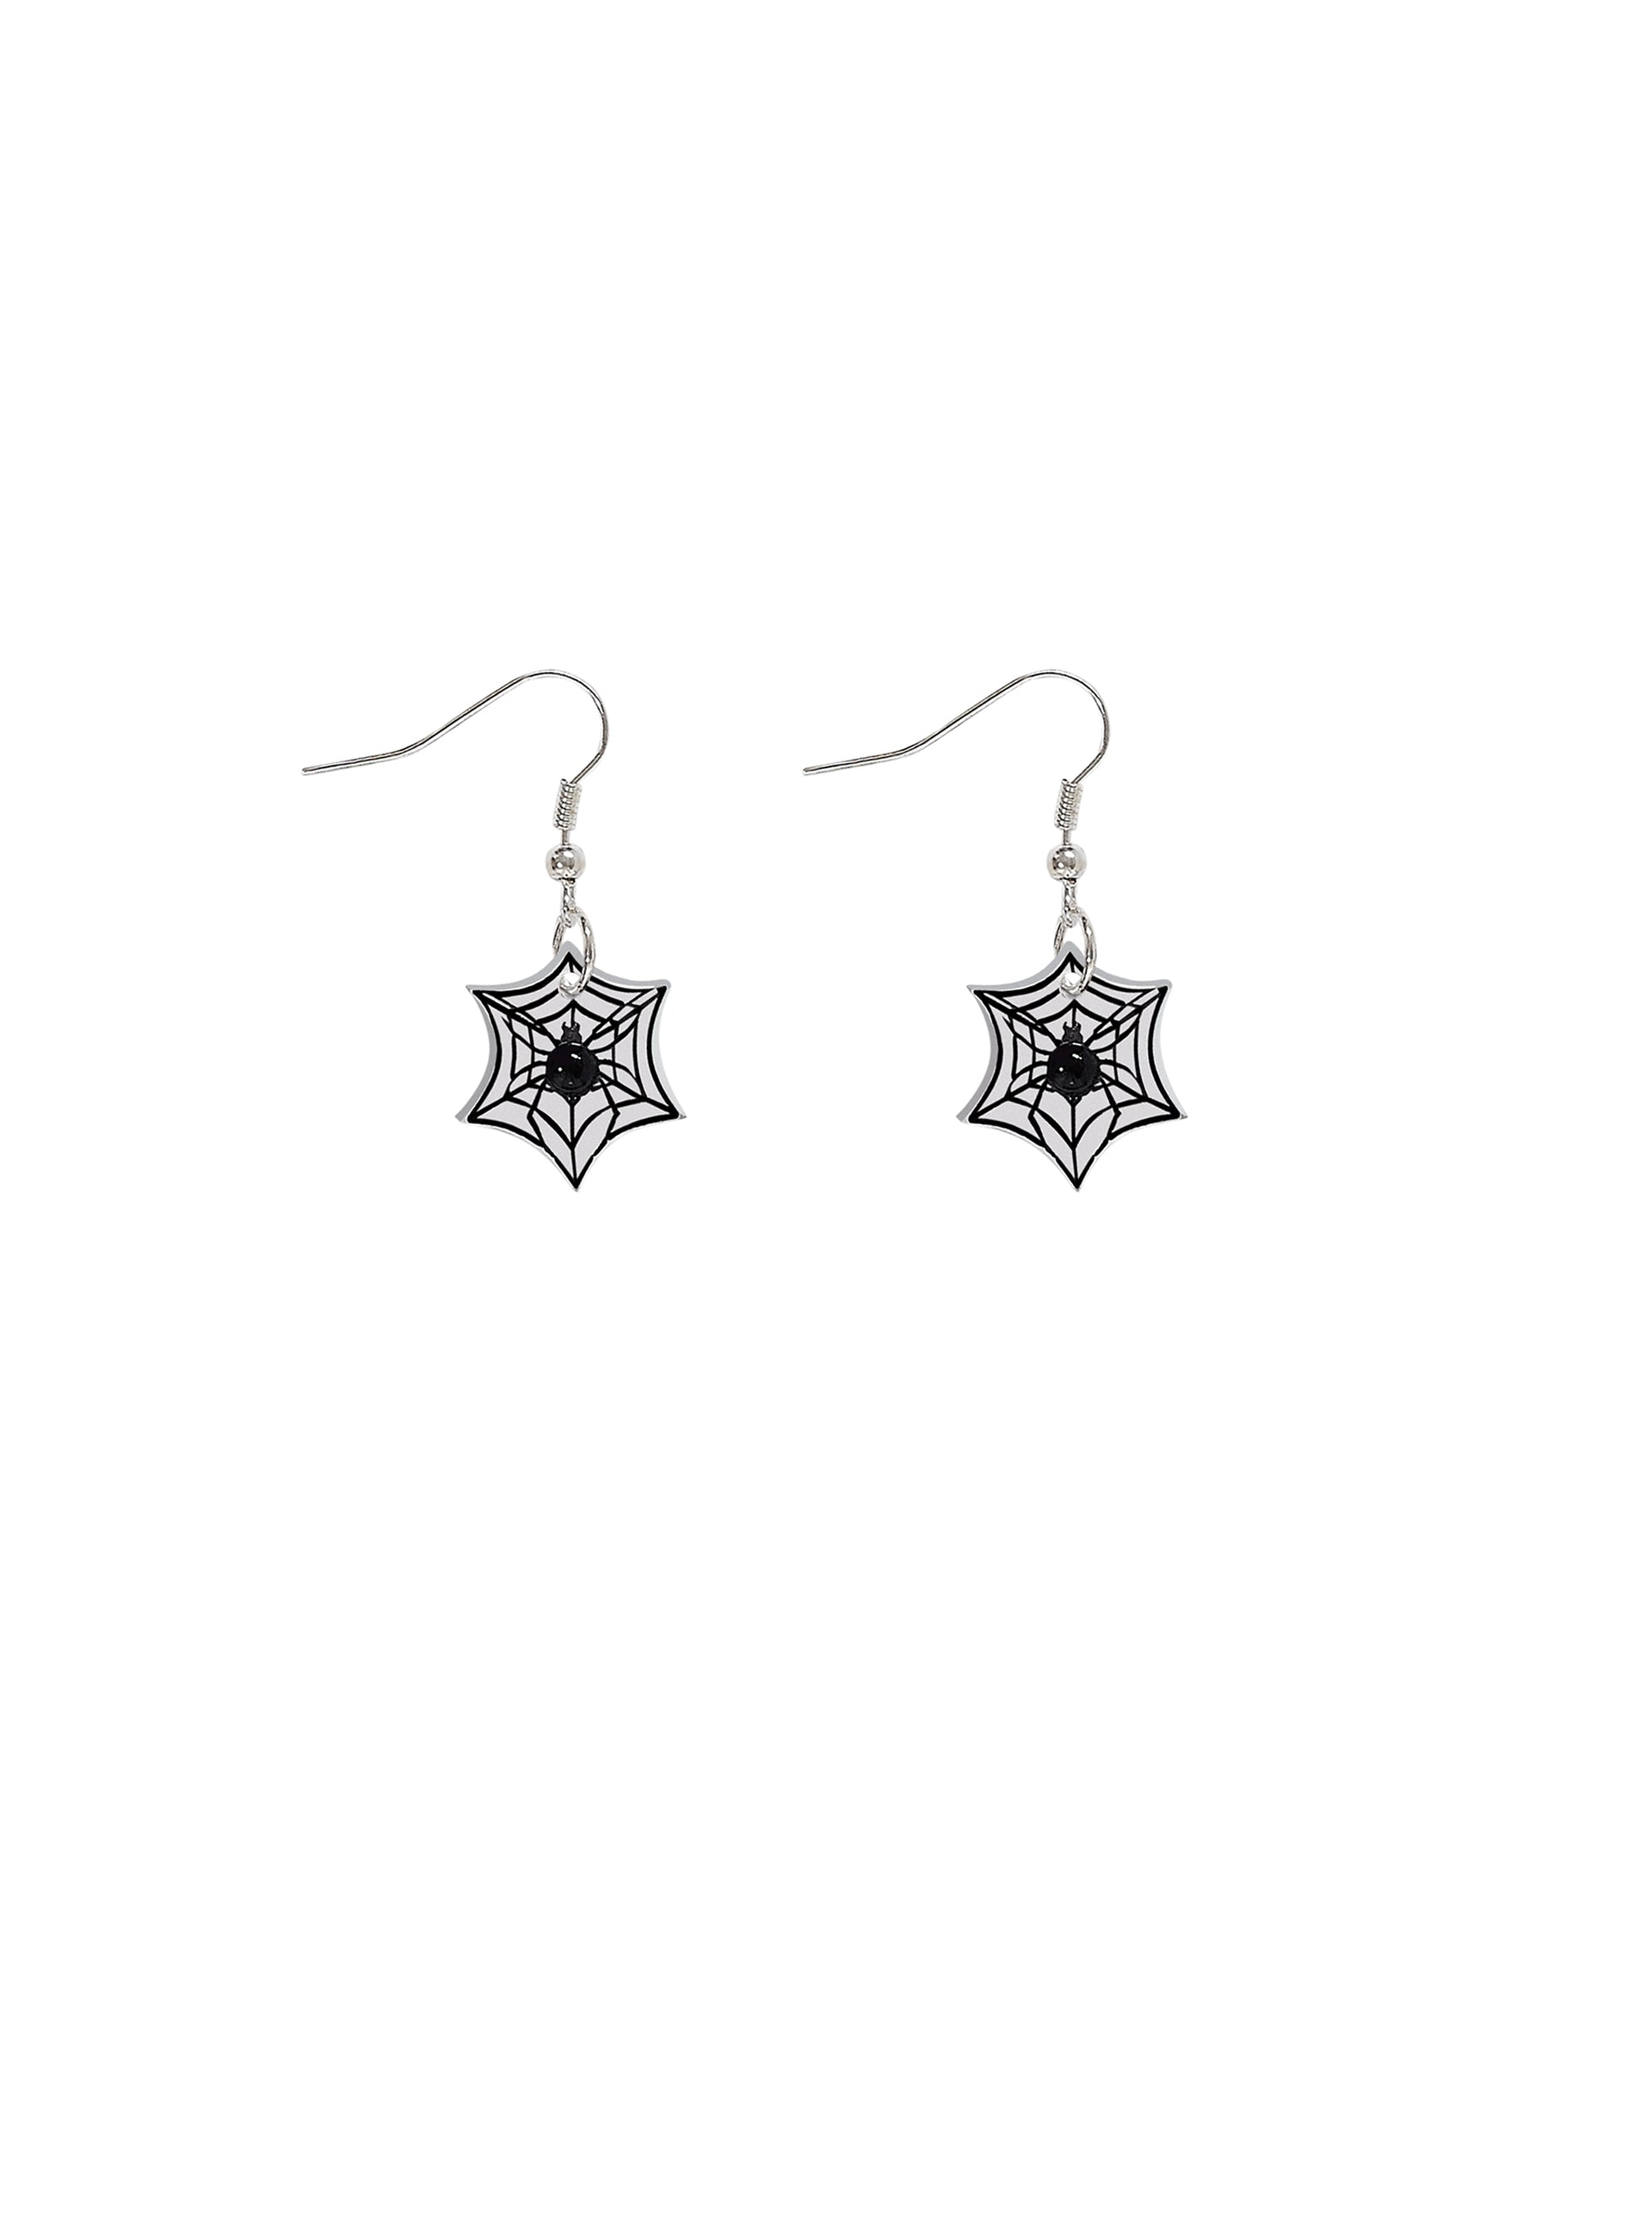 Spinning Spider Earrings